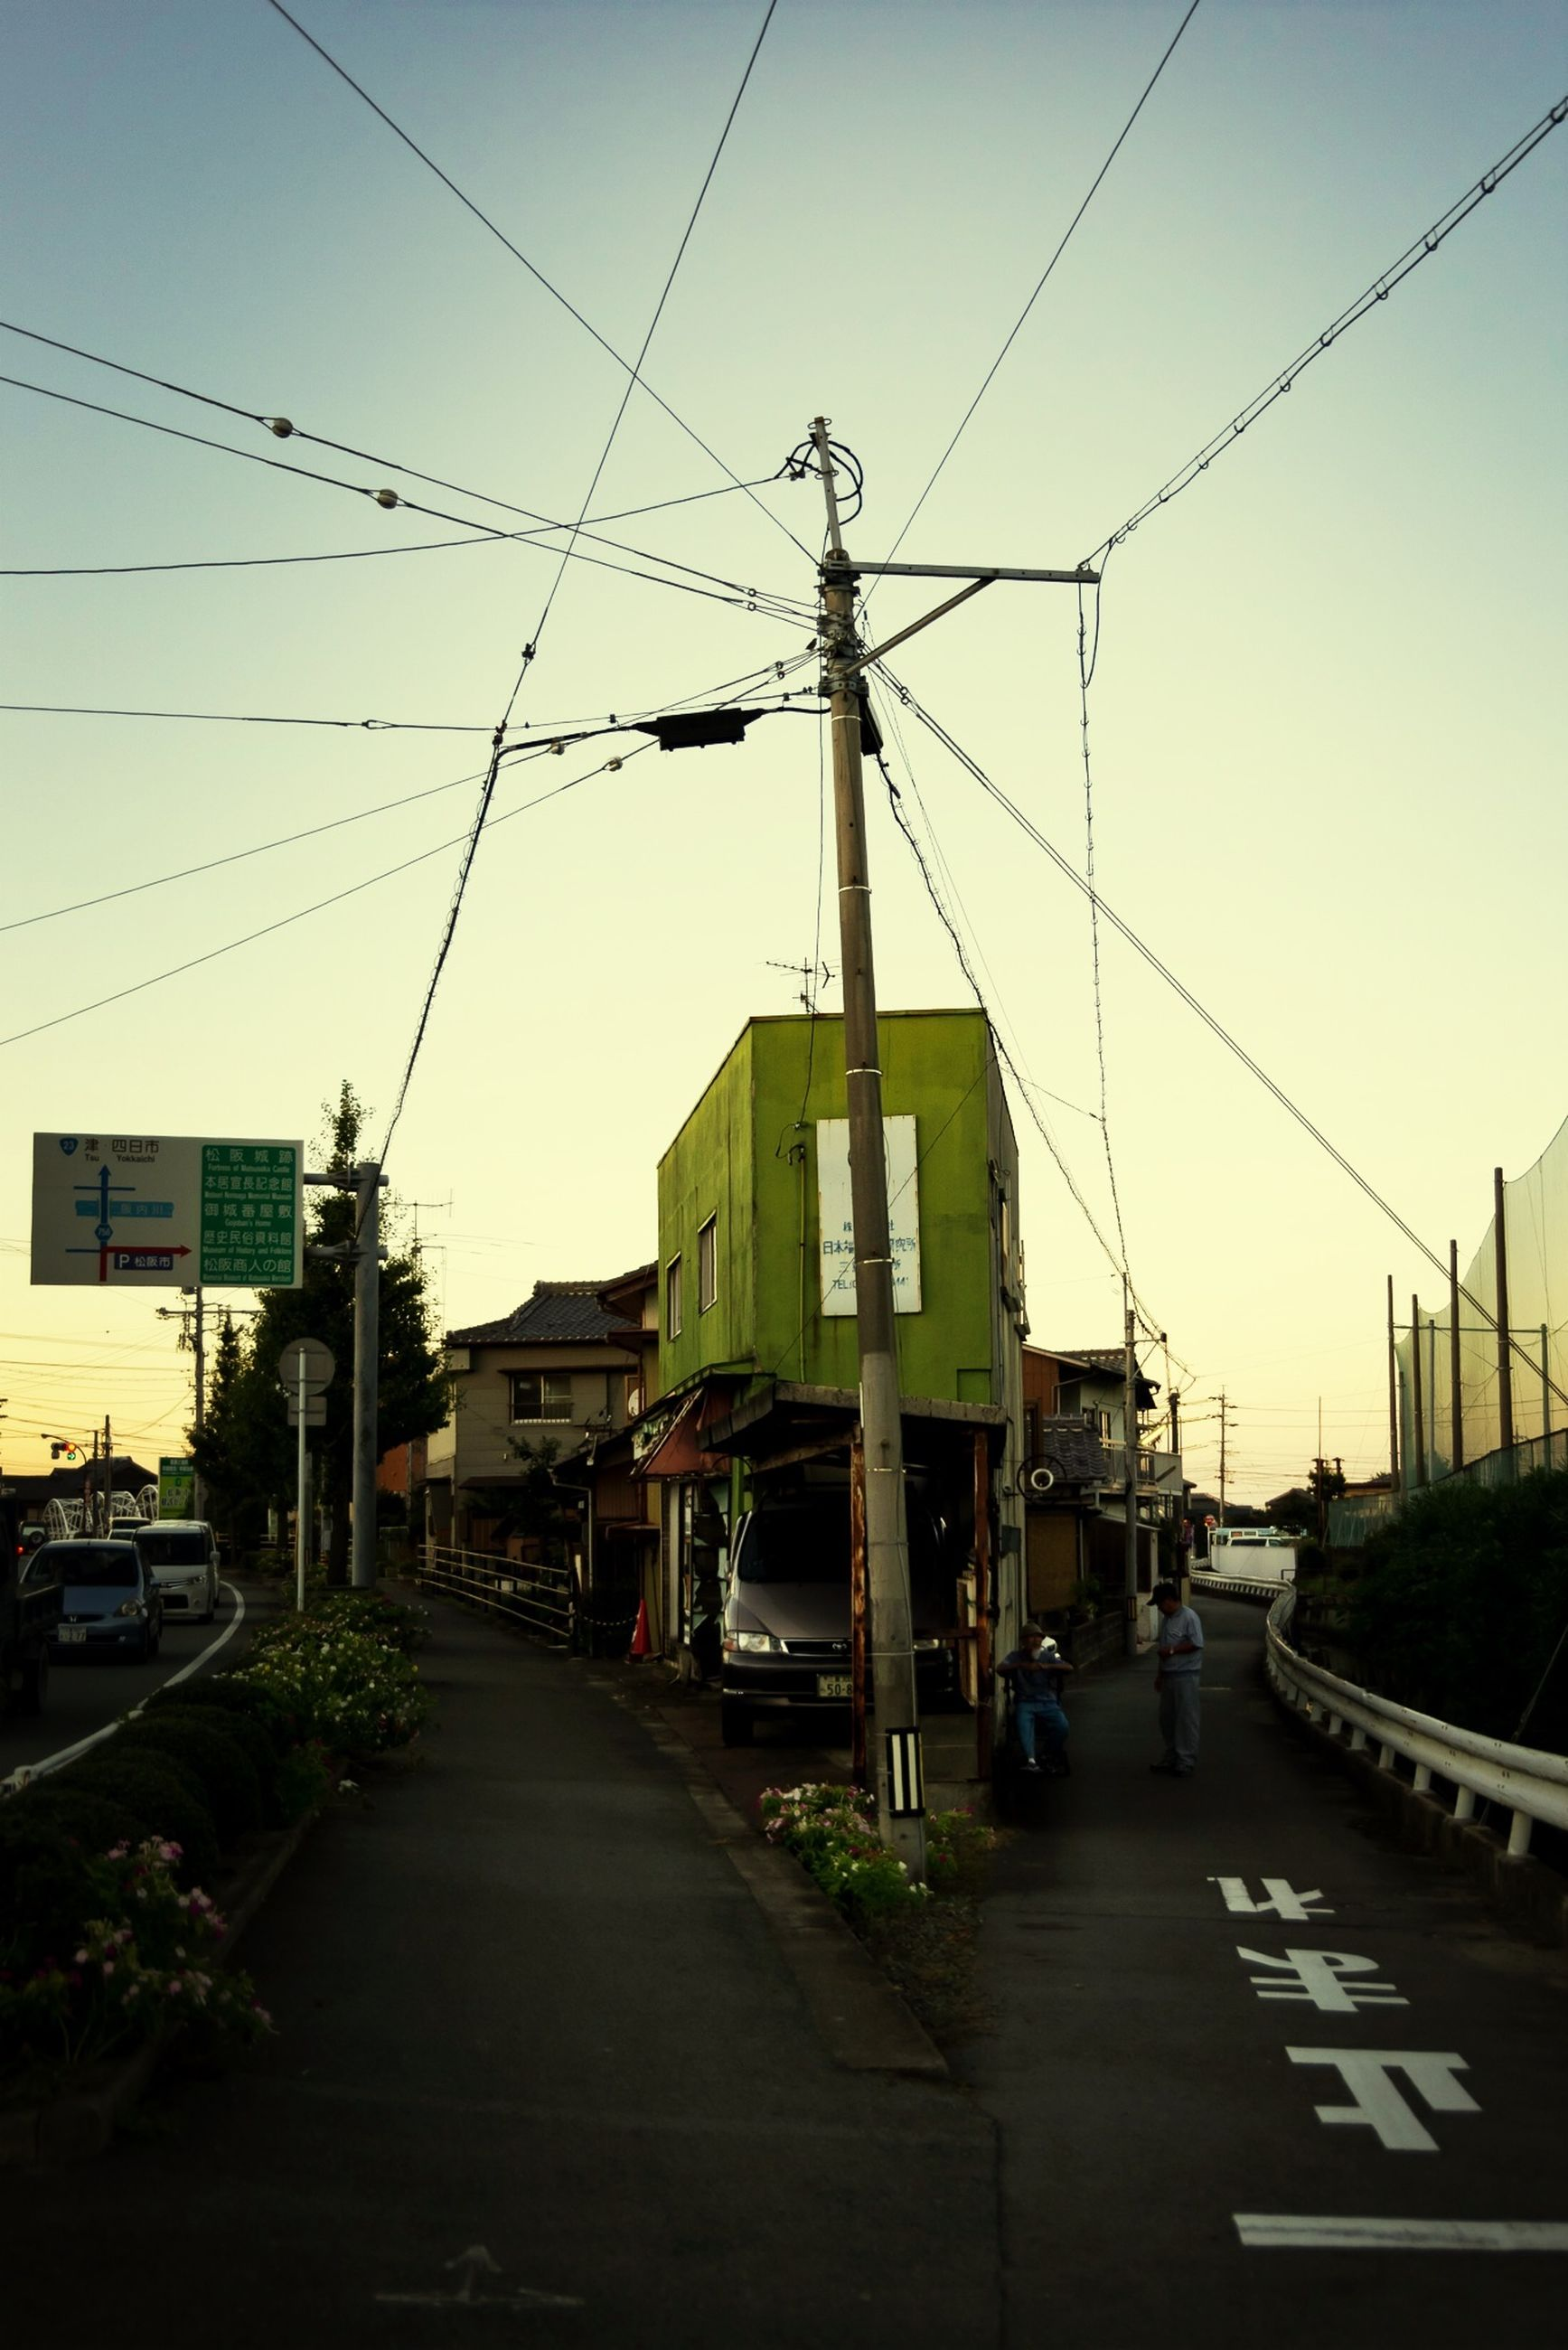 building exterior, architecture, built structure, power line, transportation, the way forward, electricity pylon, street, road, cable, clear sky, diminishing perspective, electricity, car, sky, city, power supply, vanishing point, mode of transport, outdoors